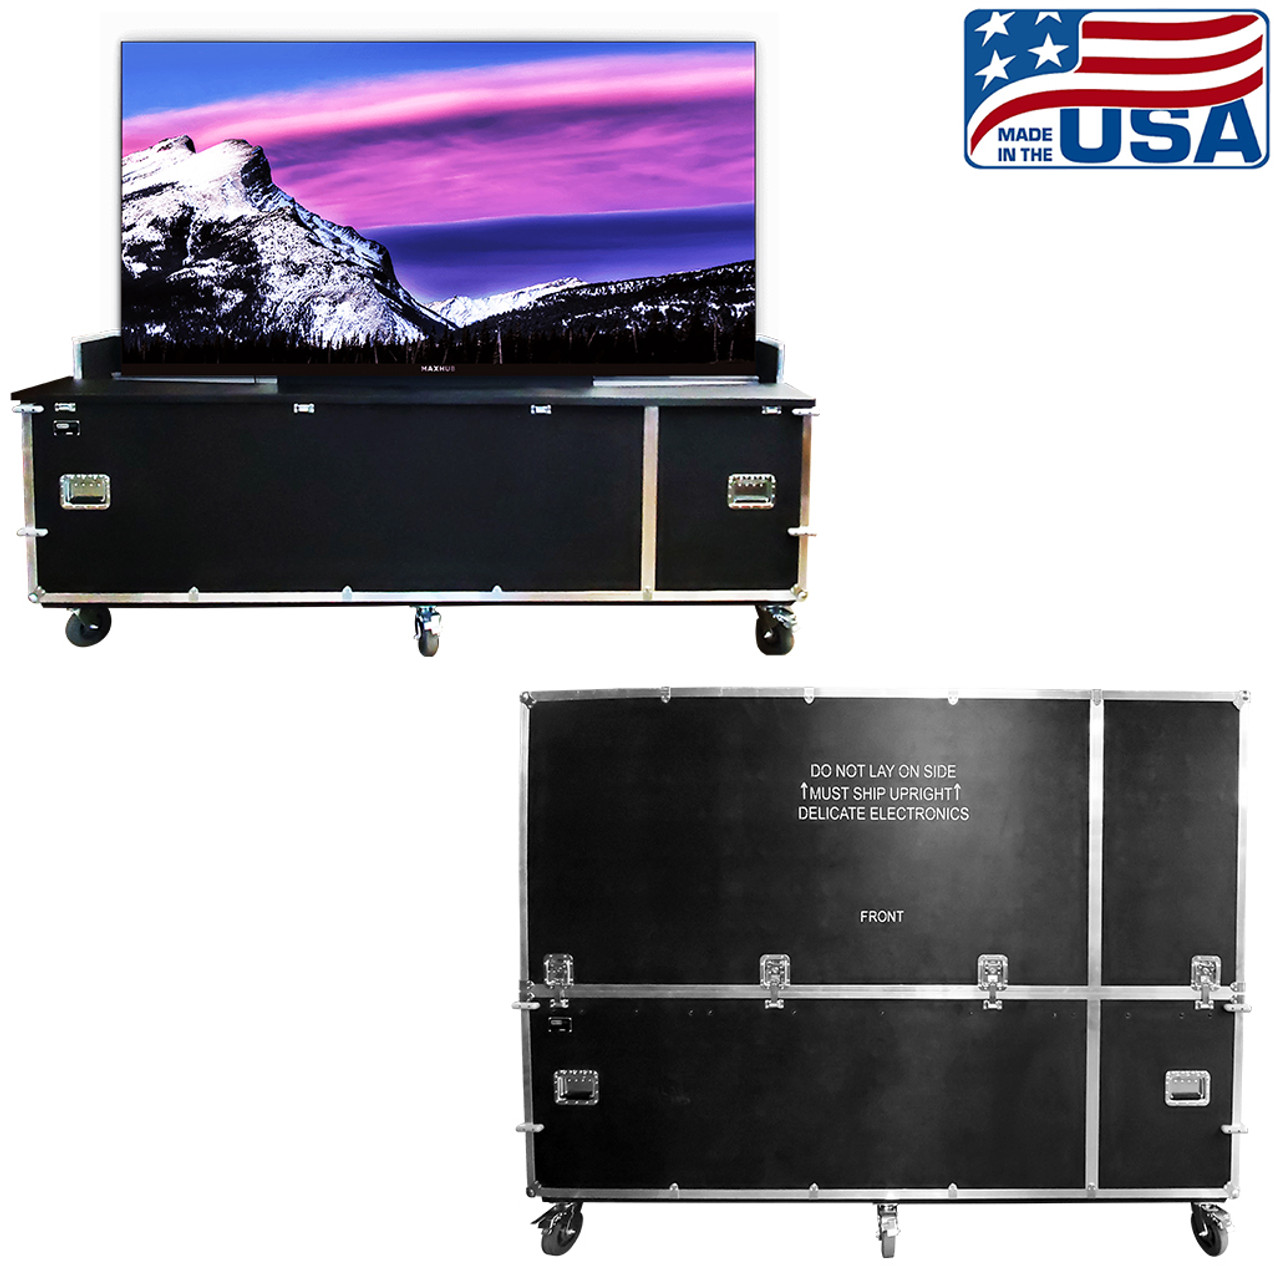 MaxHub LED wall in low position for ease of viewing. EZ-LIFT lift cases makes setup and travel efficient for the MaxHub LED wall